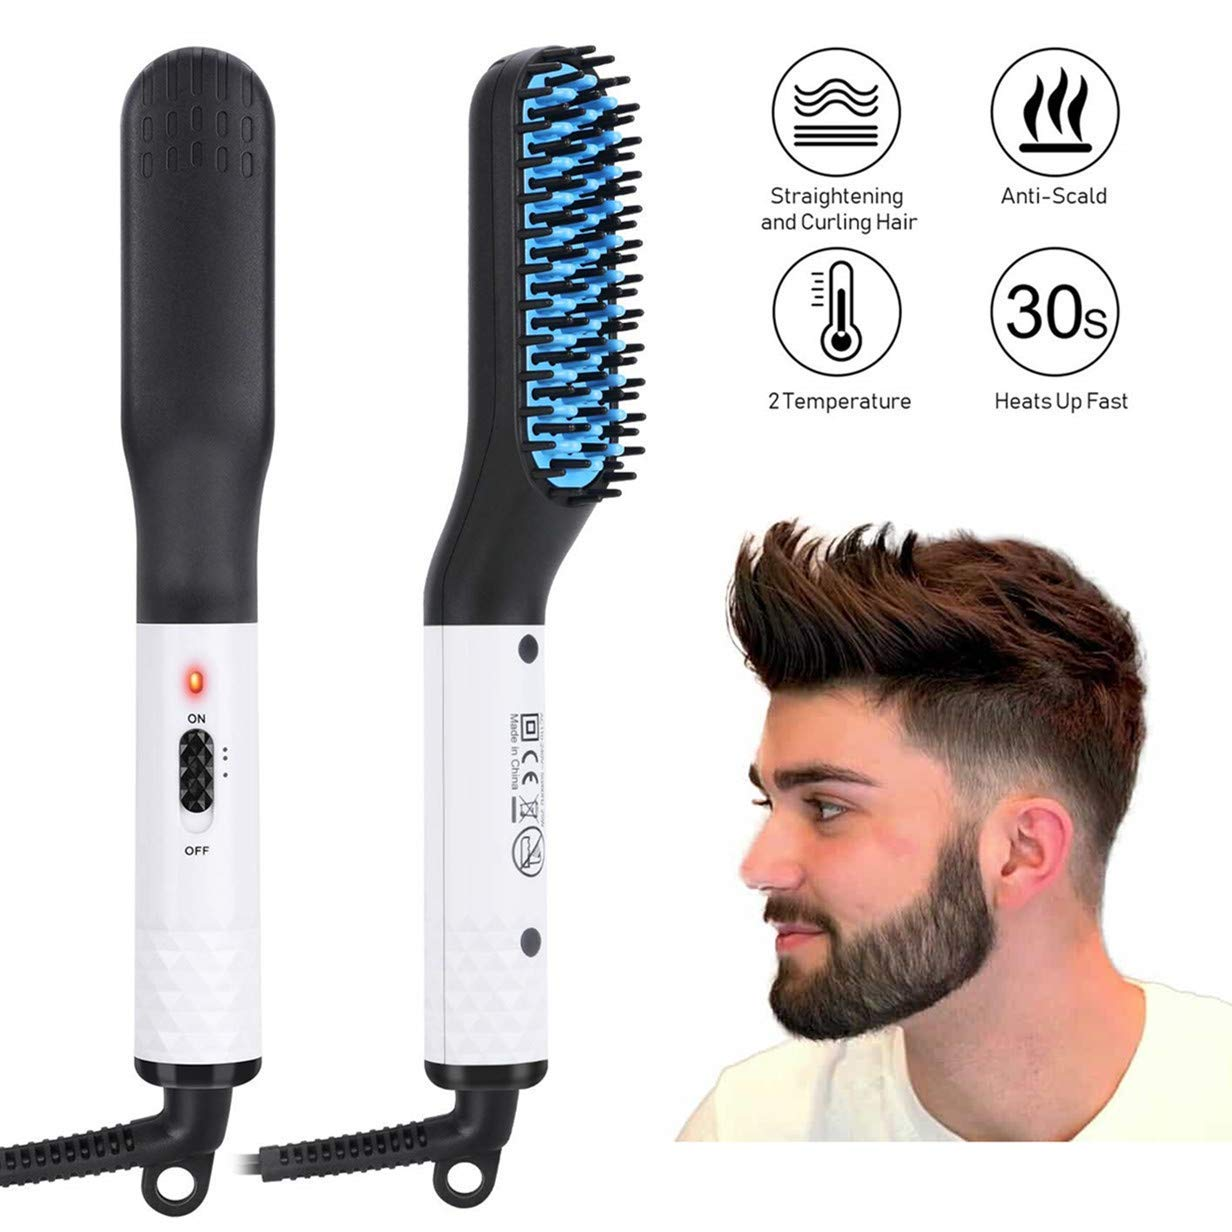 Beard Straightener for men, Multifunctional Hair Styler Electric Hot Comb and Beard Straightening Brush Hair Straightening Comb with Dual Voltage 110-240V Great for Travel Mens Stocking Stuffers